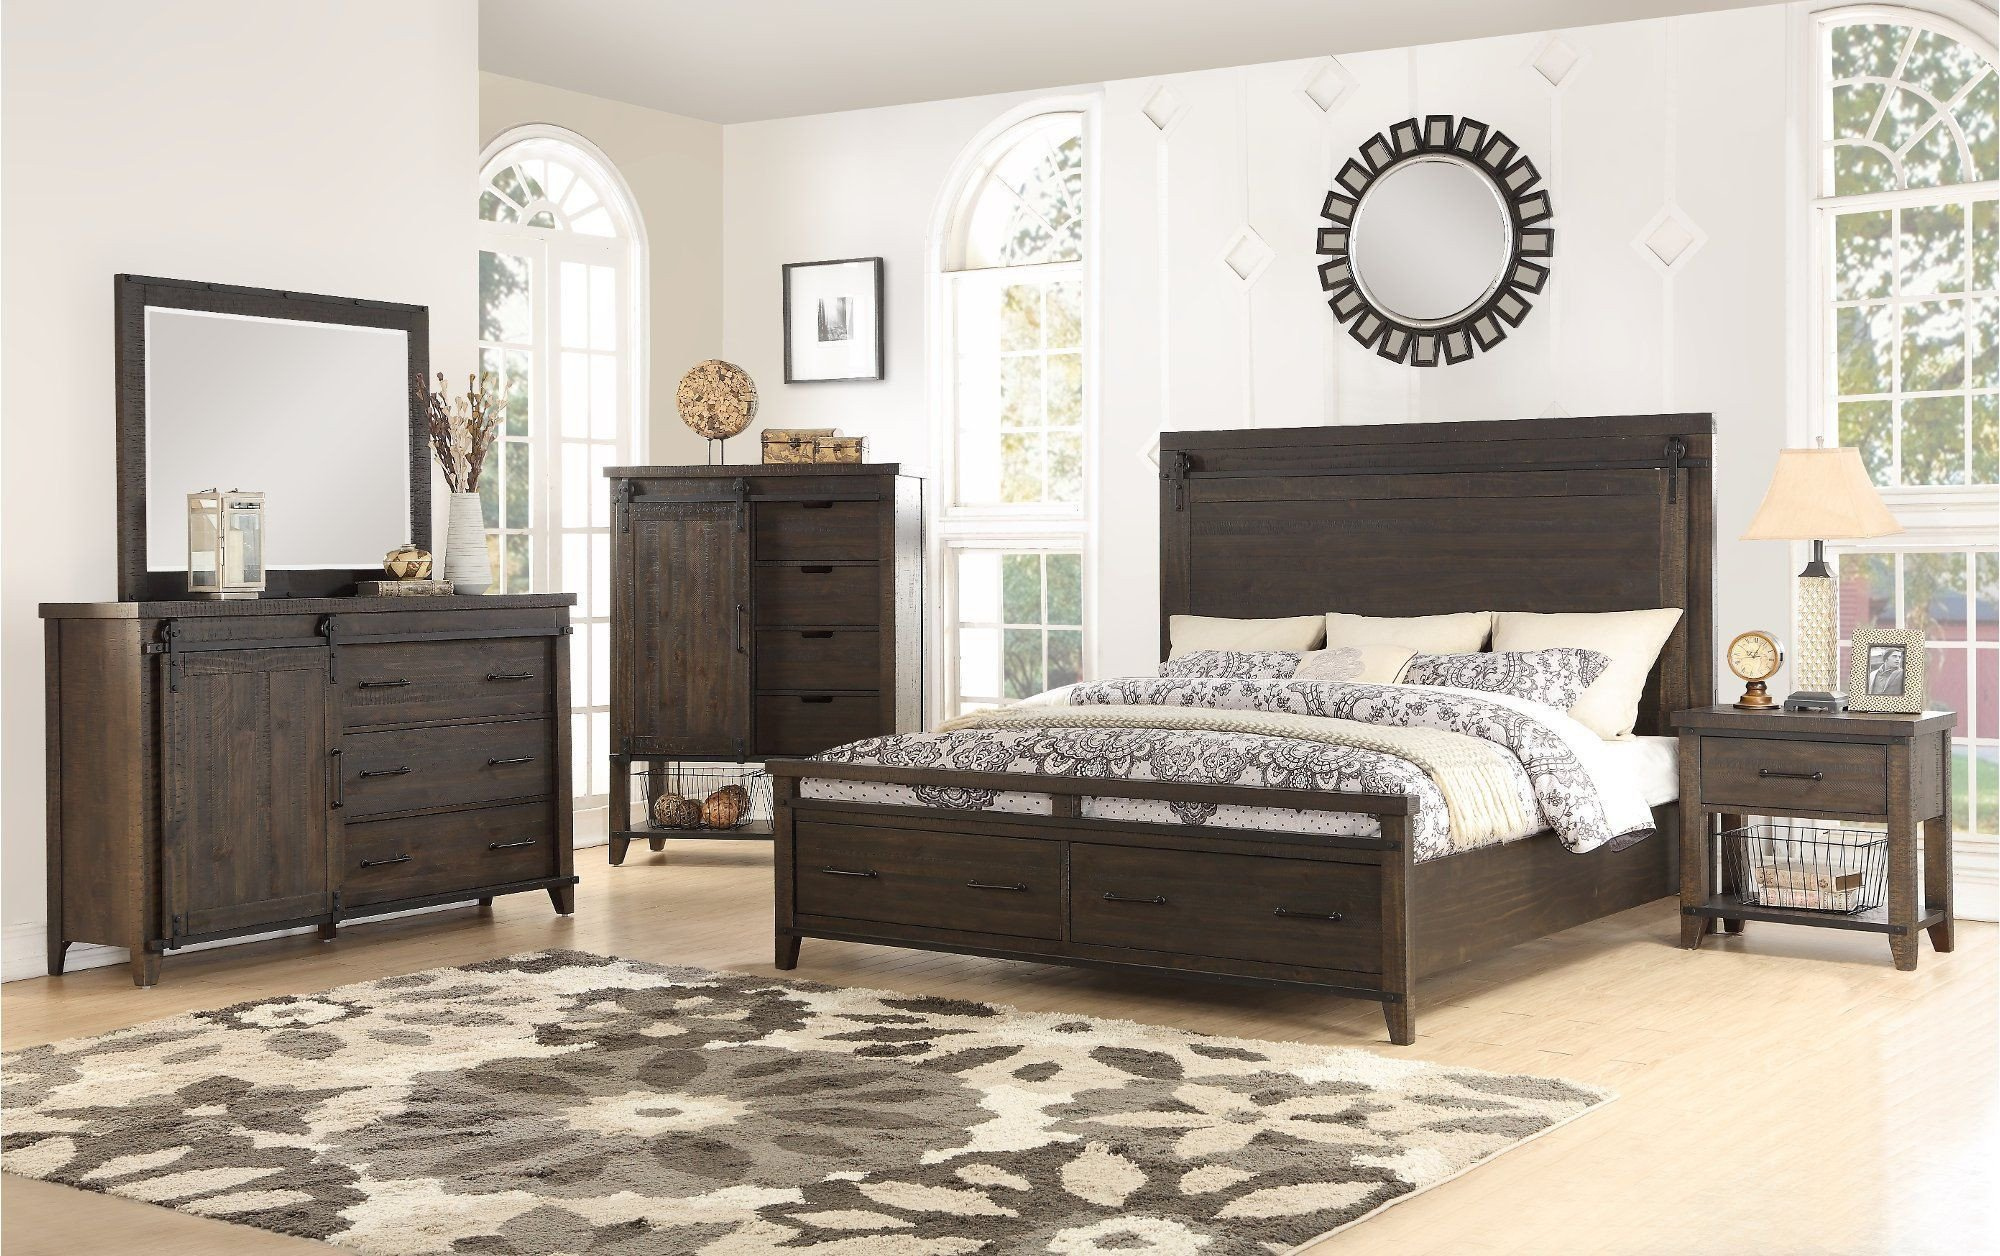 Queen Size Bedroom Suite Elegant Rustic Contemporary Brown 4 Piece King Bedroom Set Montana